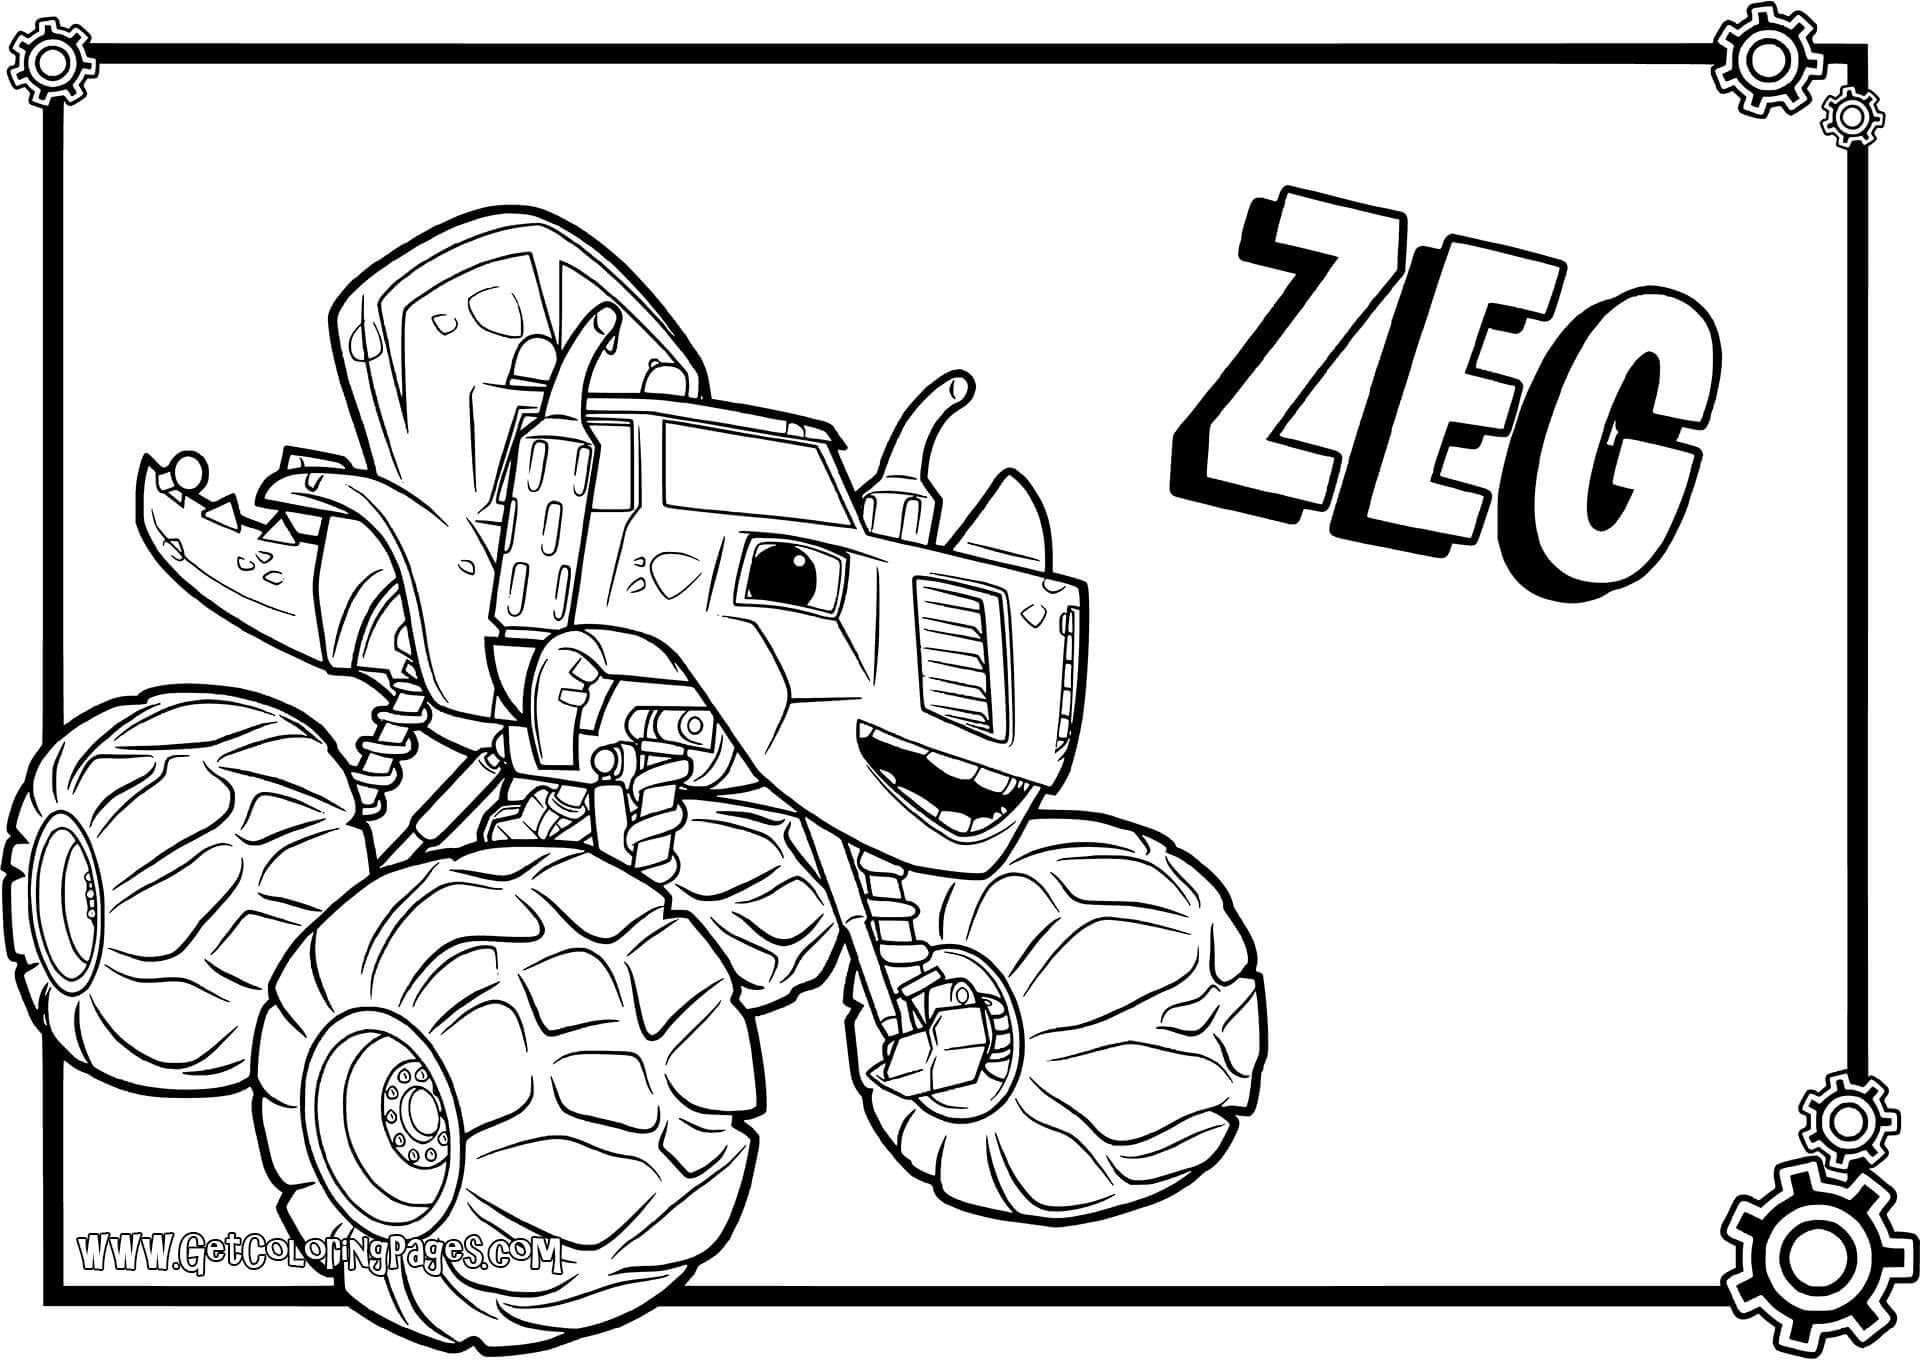 Blaze And The Monster Machines Coloring Pages Lovely Crusher Drawing At Getdrawings Inspirational Interior Monster Coloring Pages Coloring Pages Coloring Books